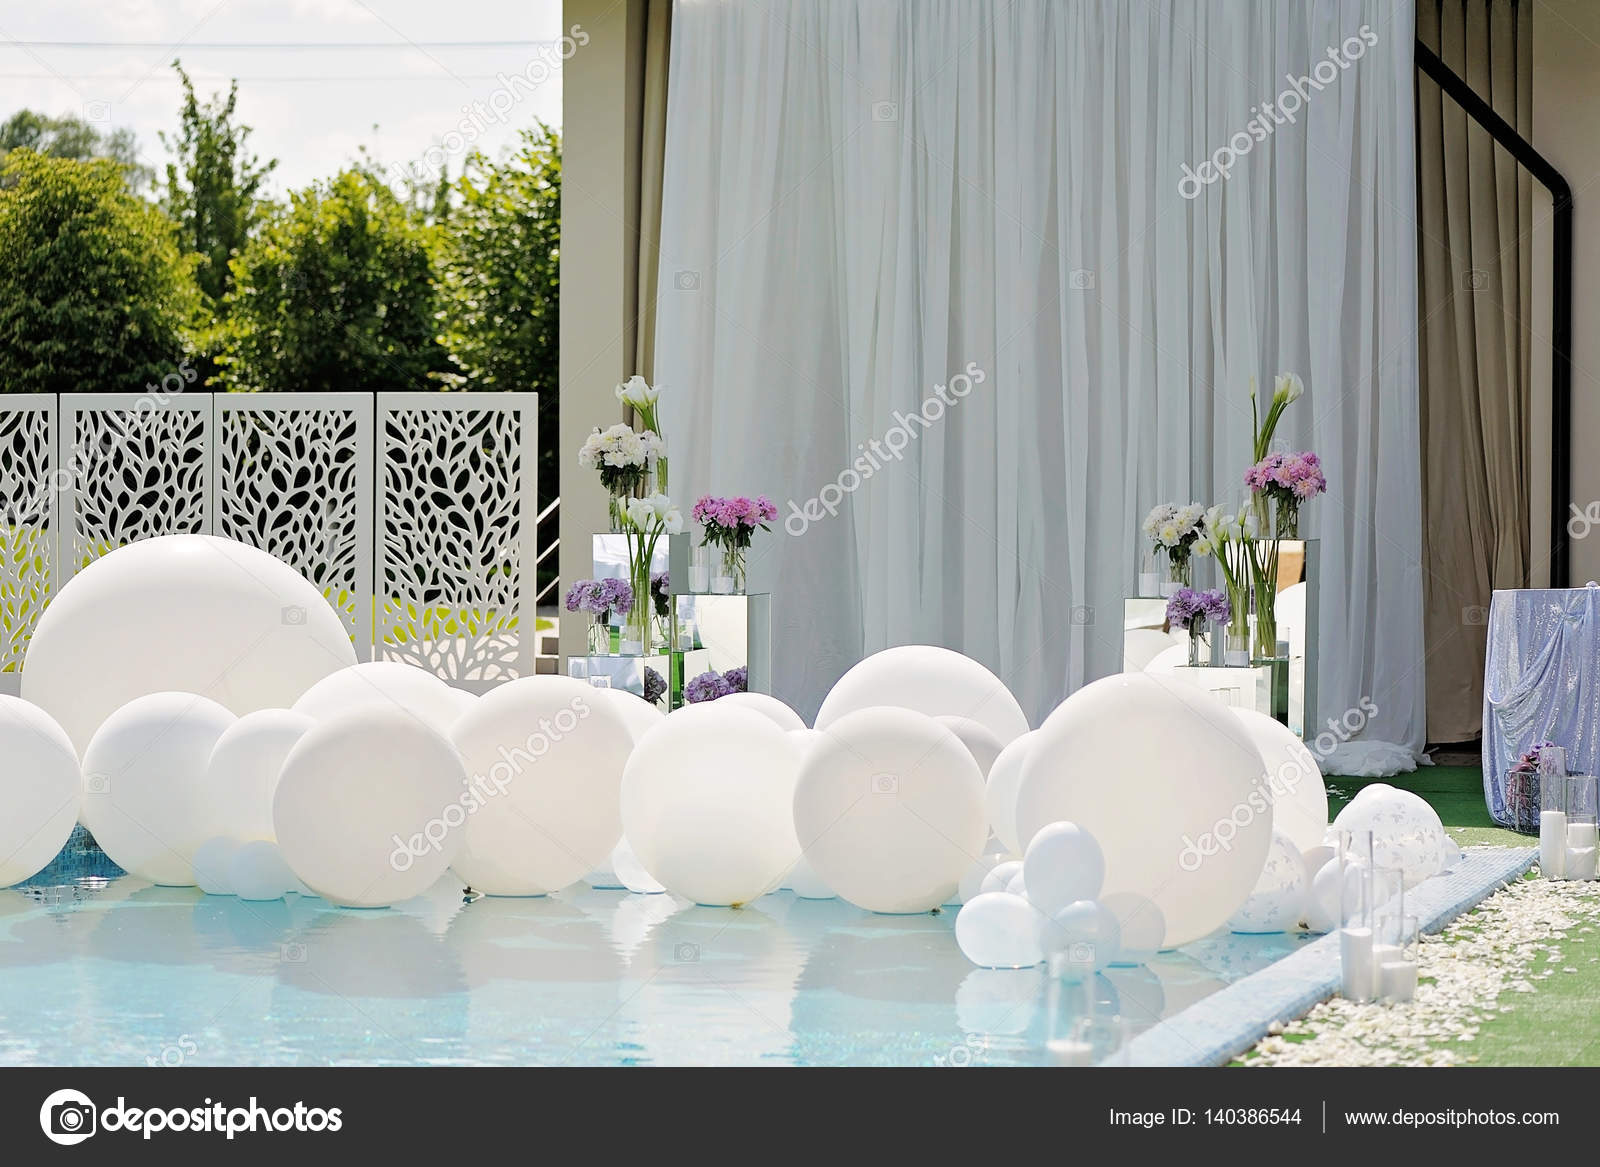 Pool Blue Wedding Reception Decorations Decorations For